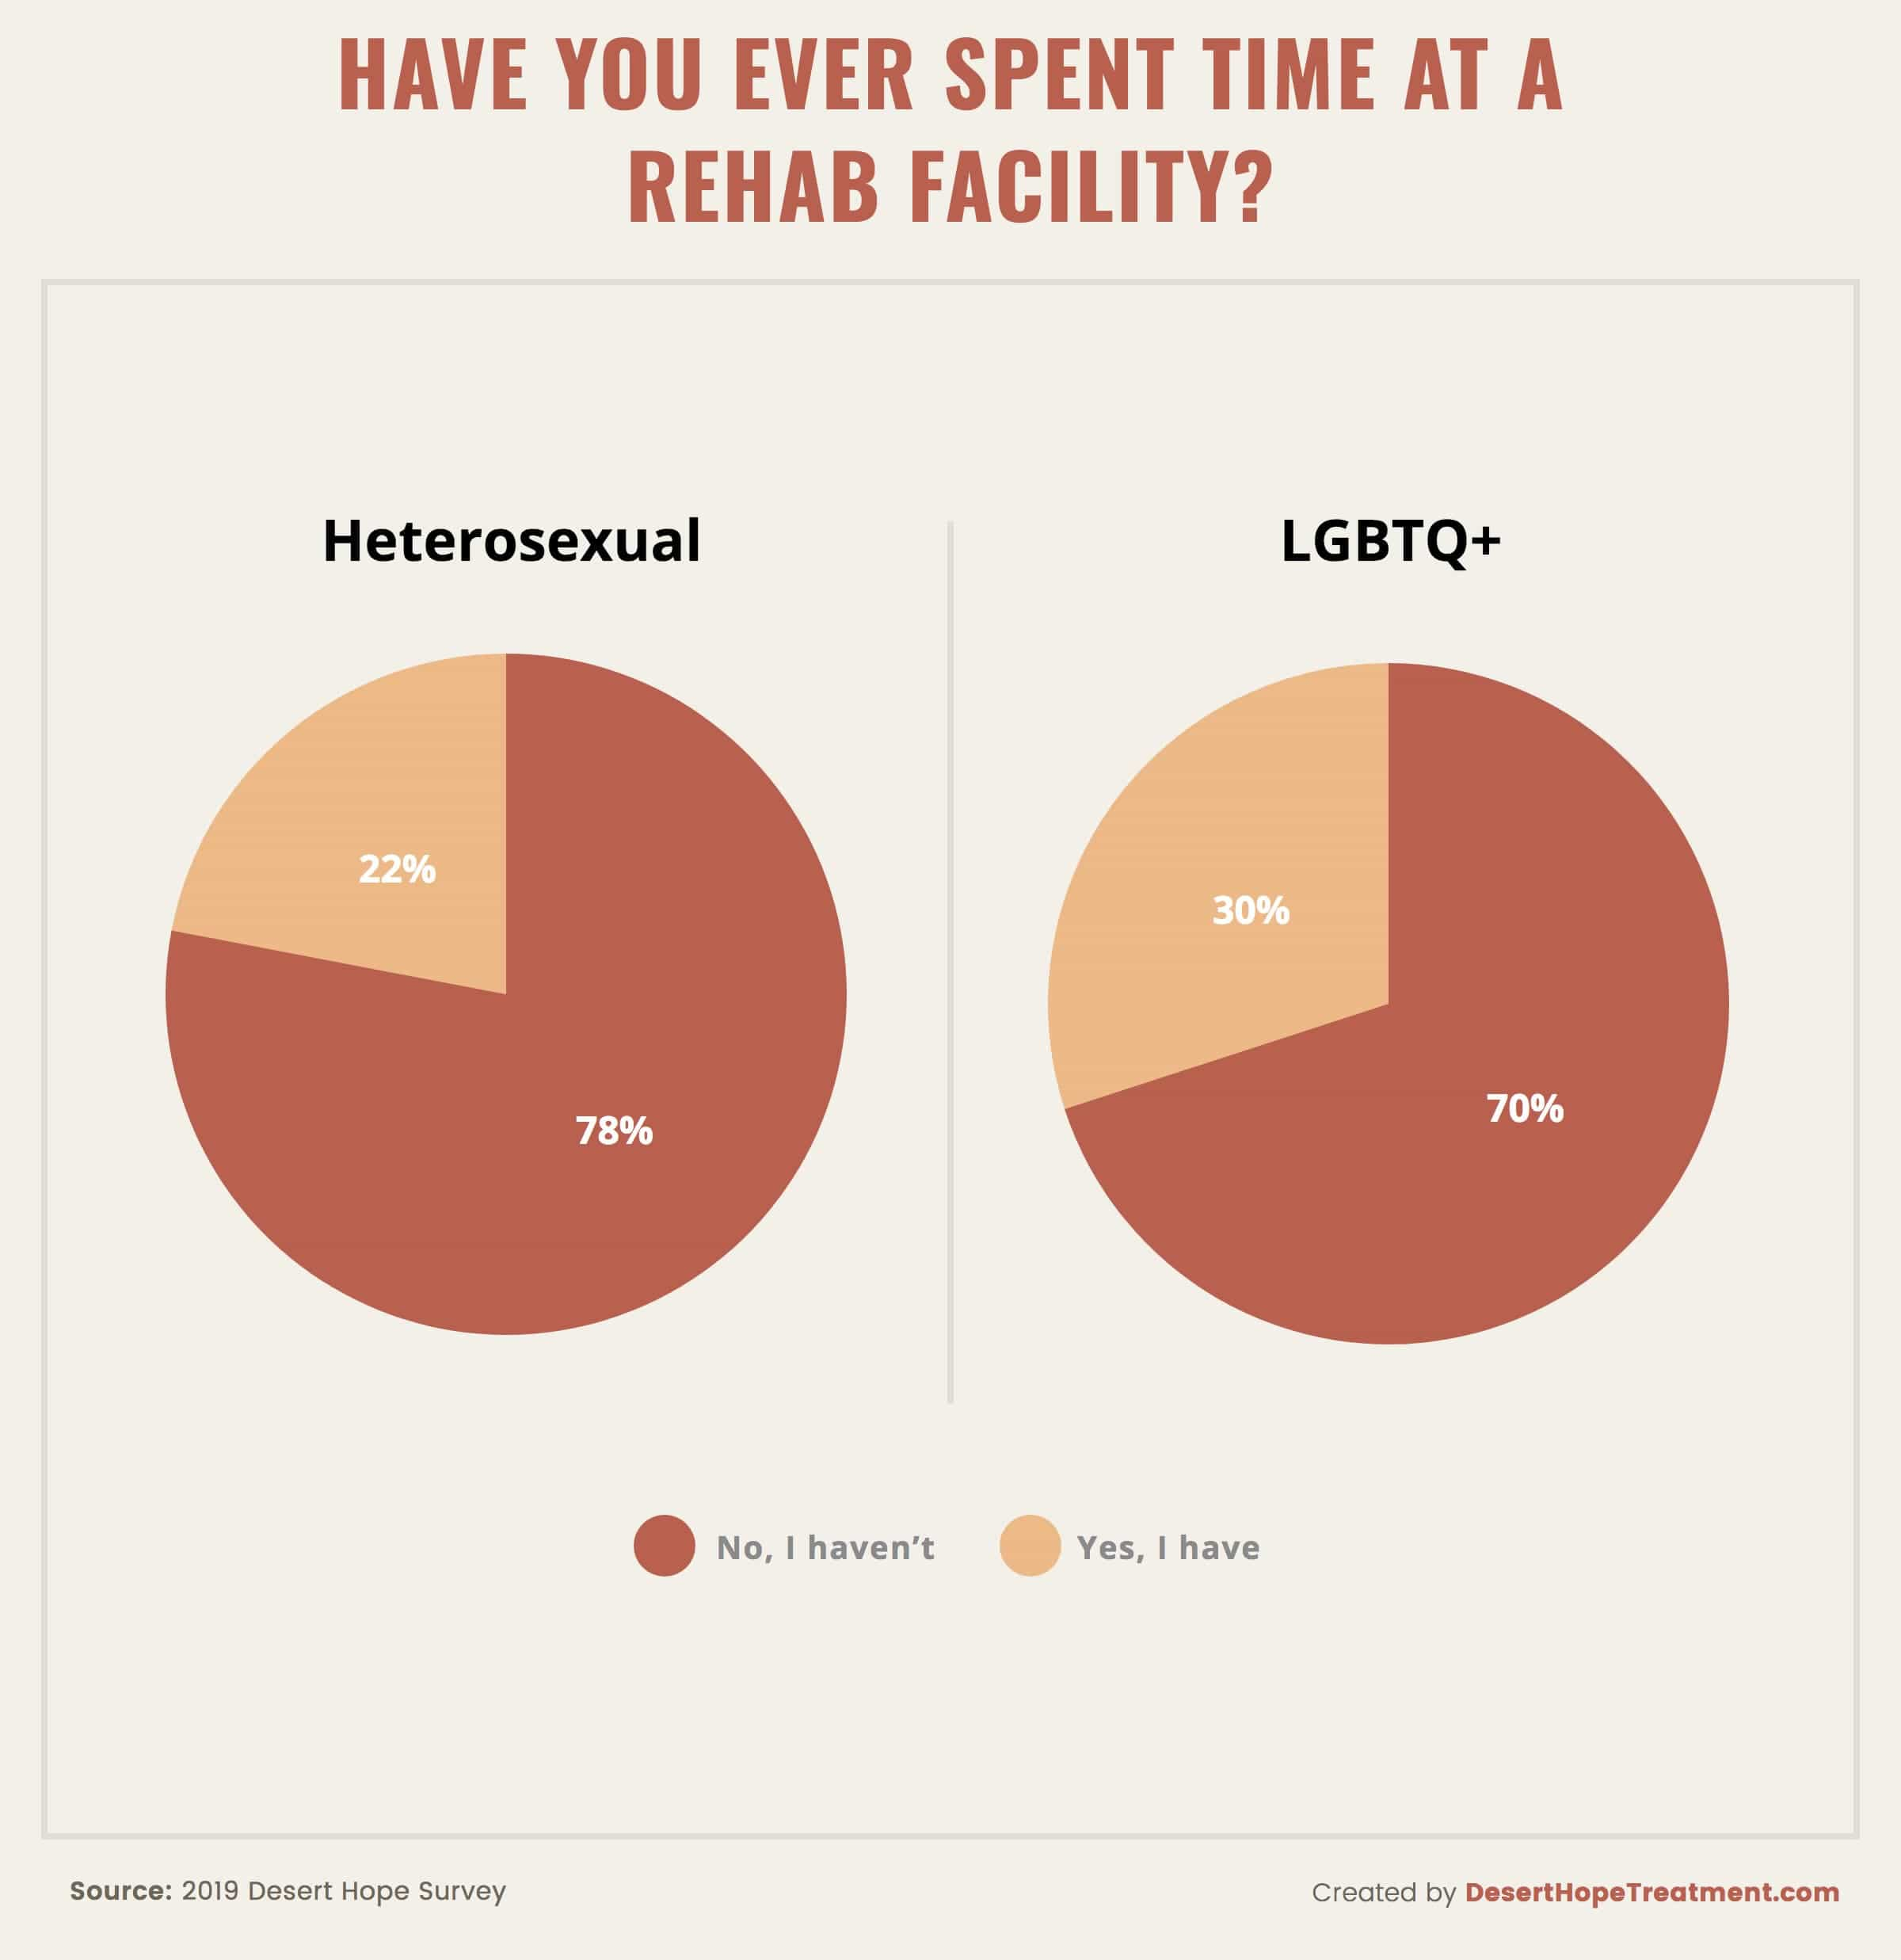 Percentages of LGBTQ+ and Heterosexual Individuals Who Went to Rehab